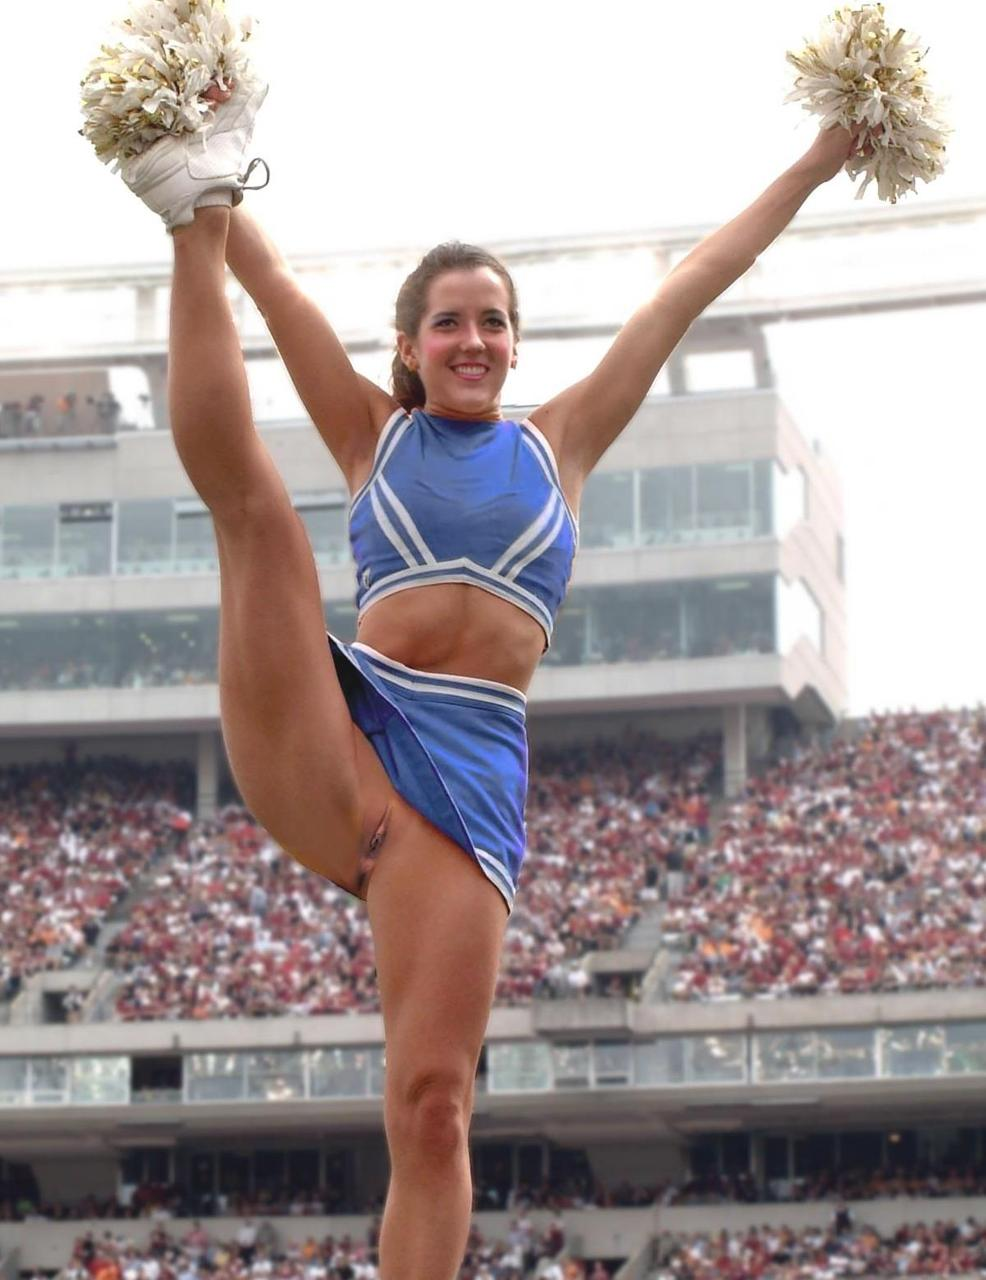 Brave Cheerleader Without Pants She Supports Her Team With Her Shaved Pussy Porno Zdjecie